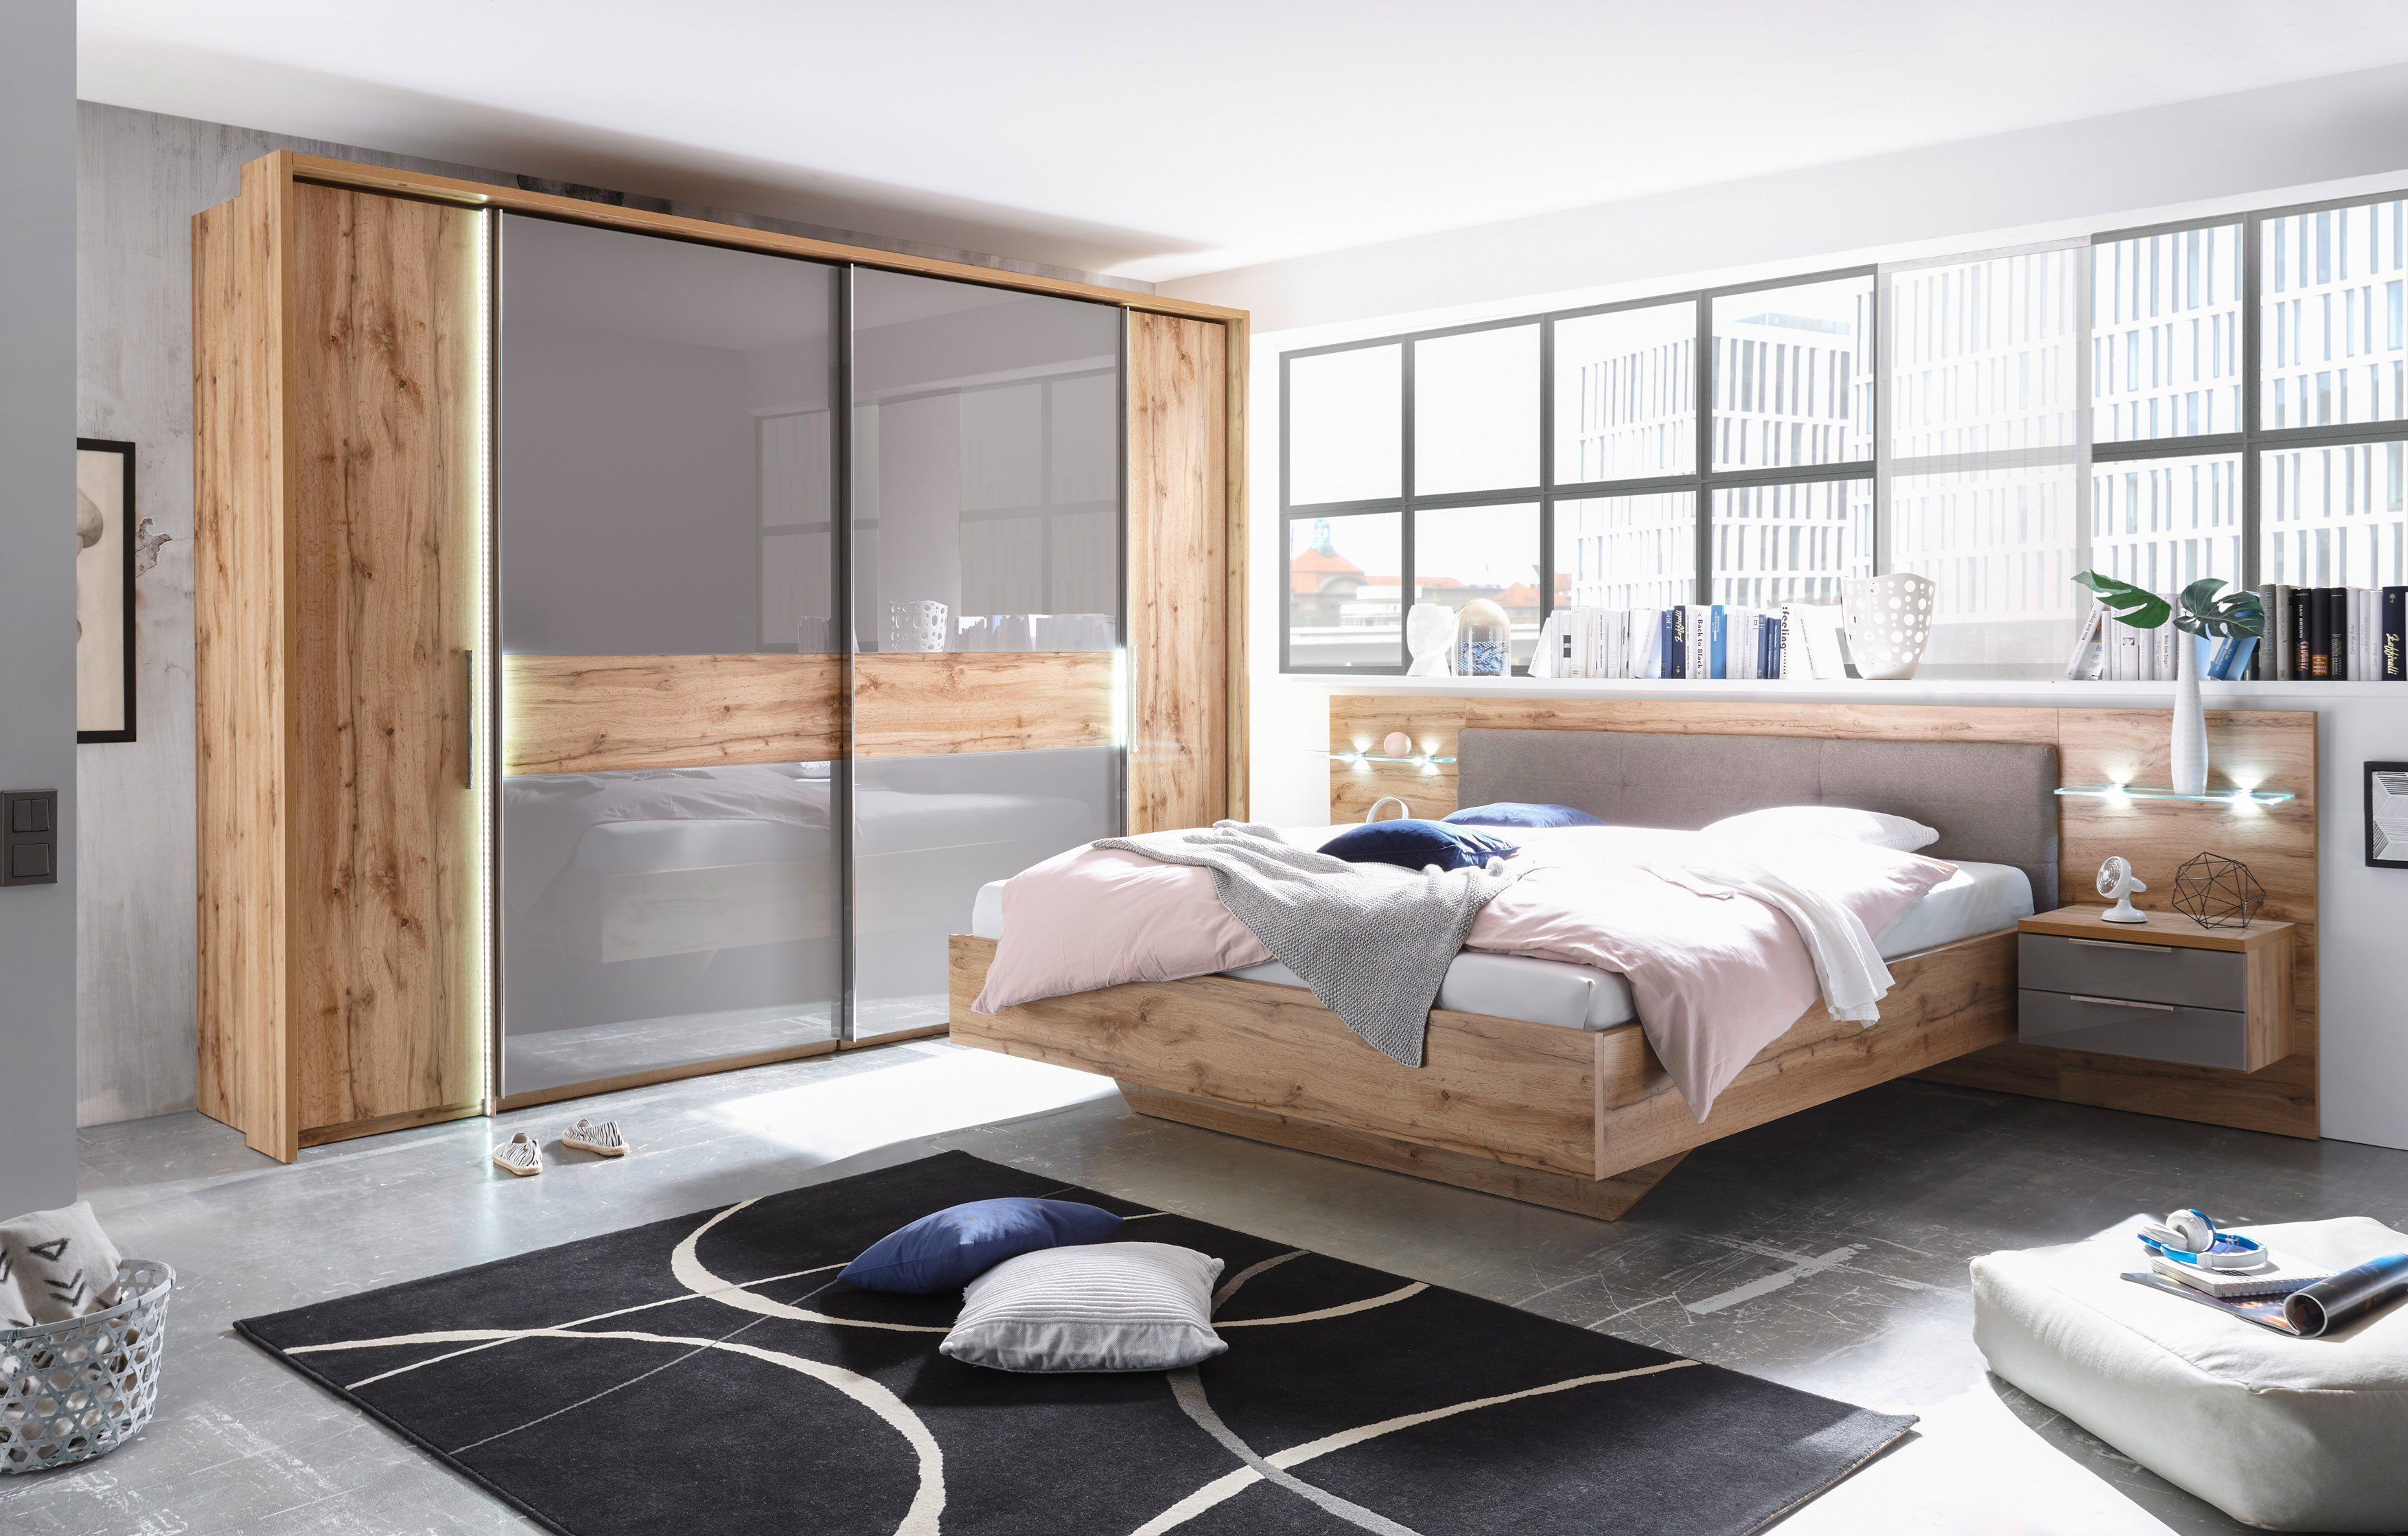 schlafkontor milano schlafzimmer wildeiche glas basalt. Black Bedroom Furniture Sets. Home Design Ideas